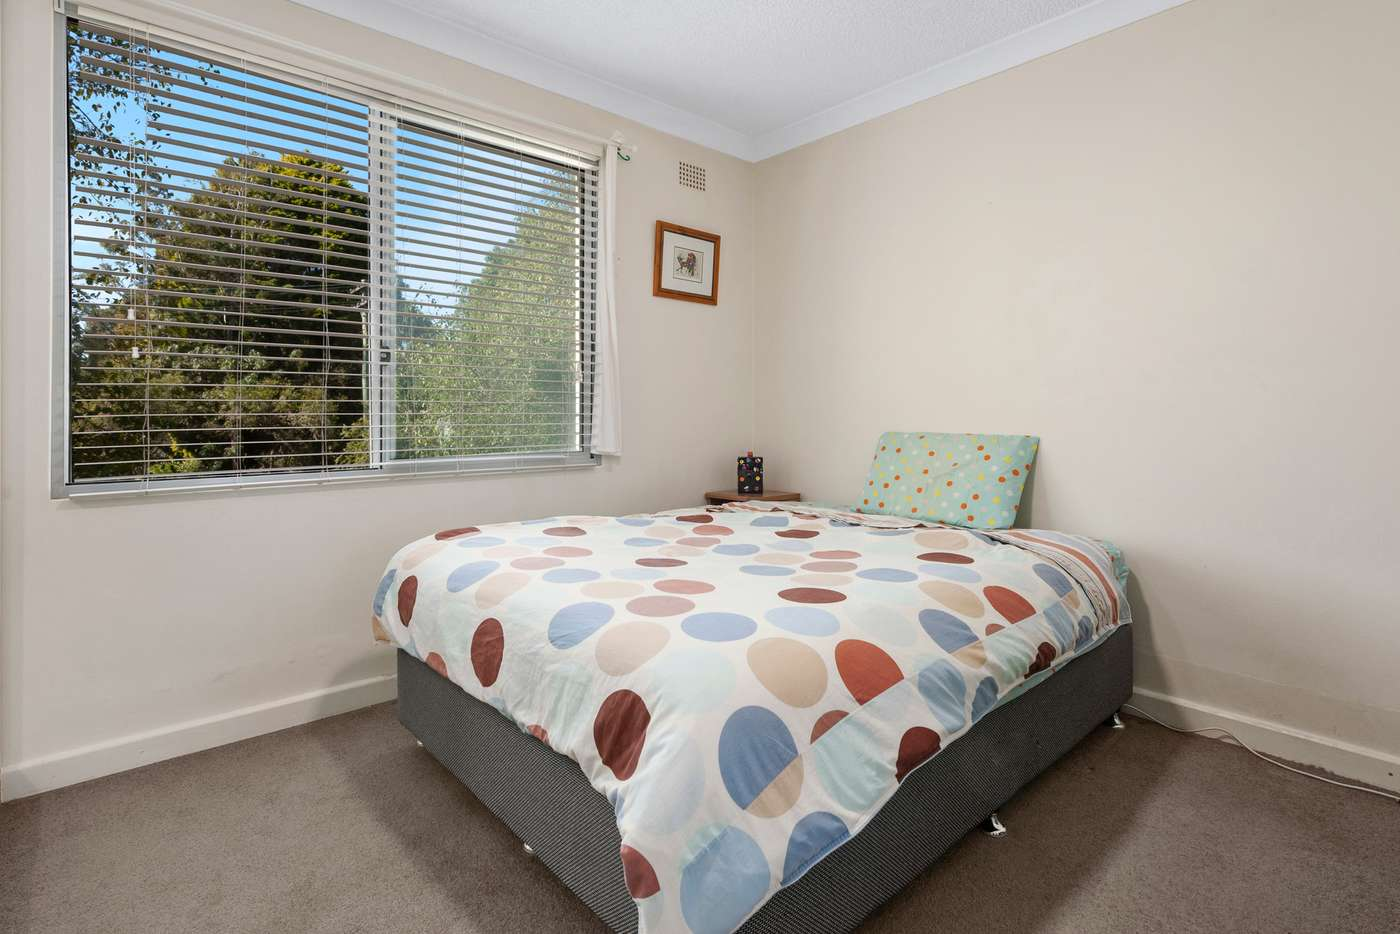 Fifth view of Homely apartment listing, 20/81-83 Florence Street, Hornsby NSW 2077